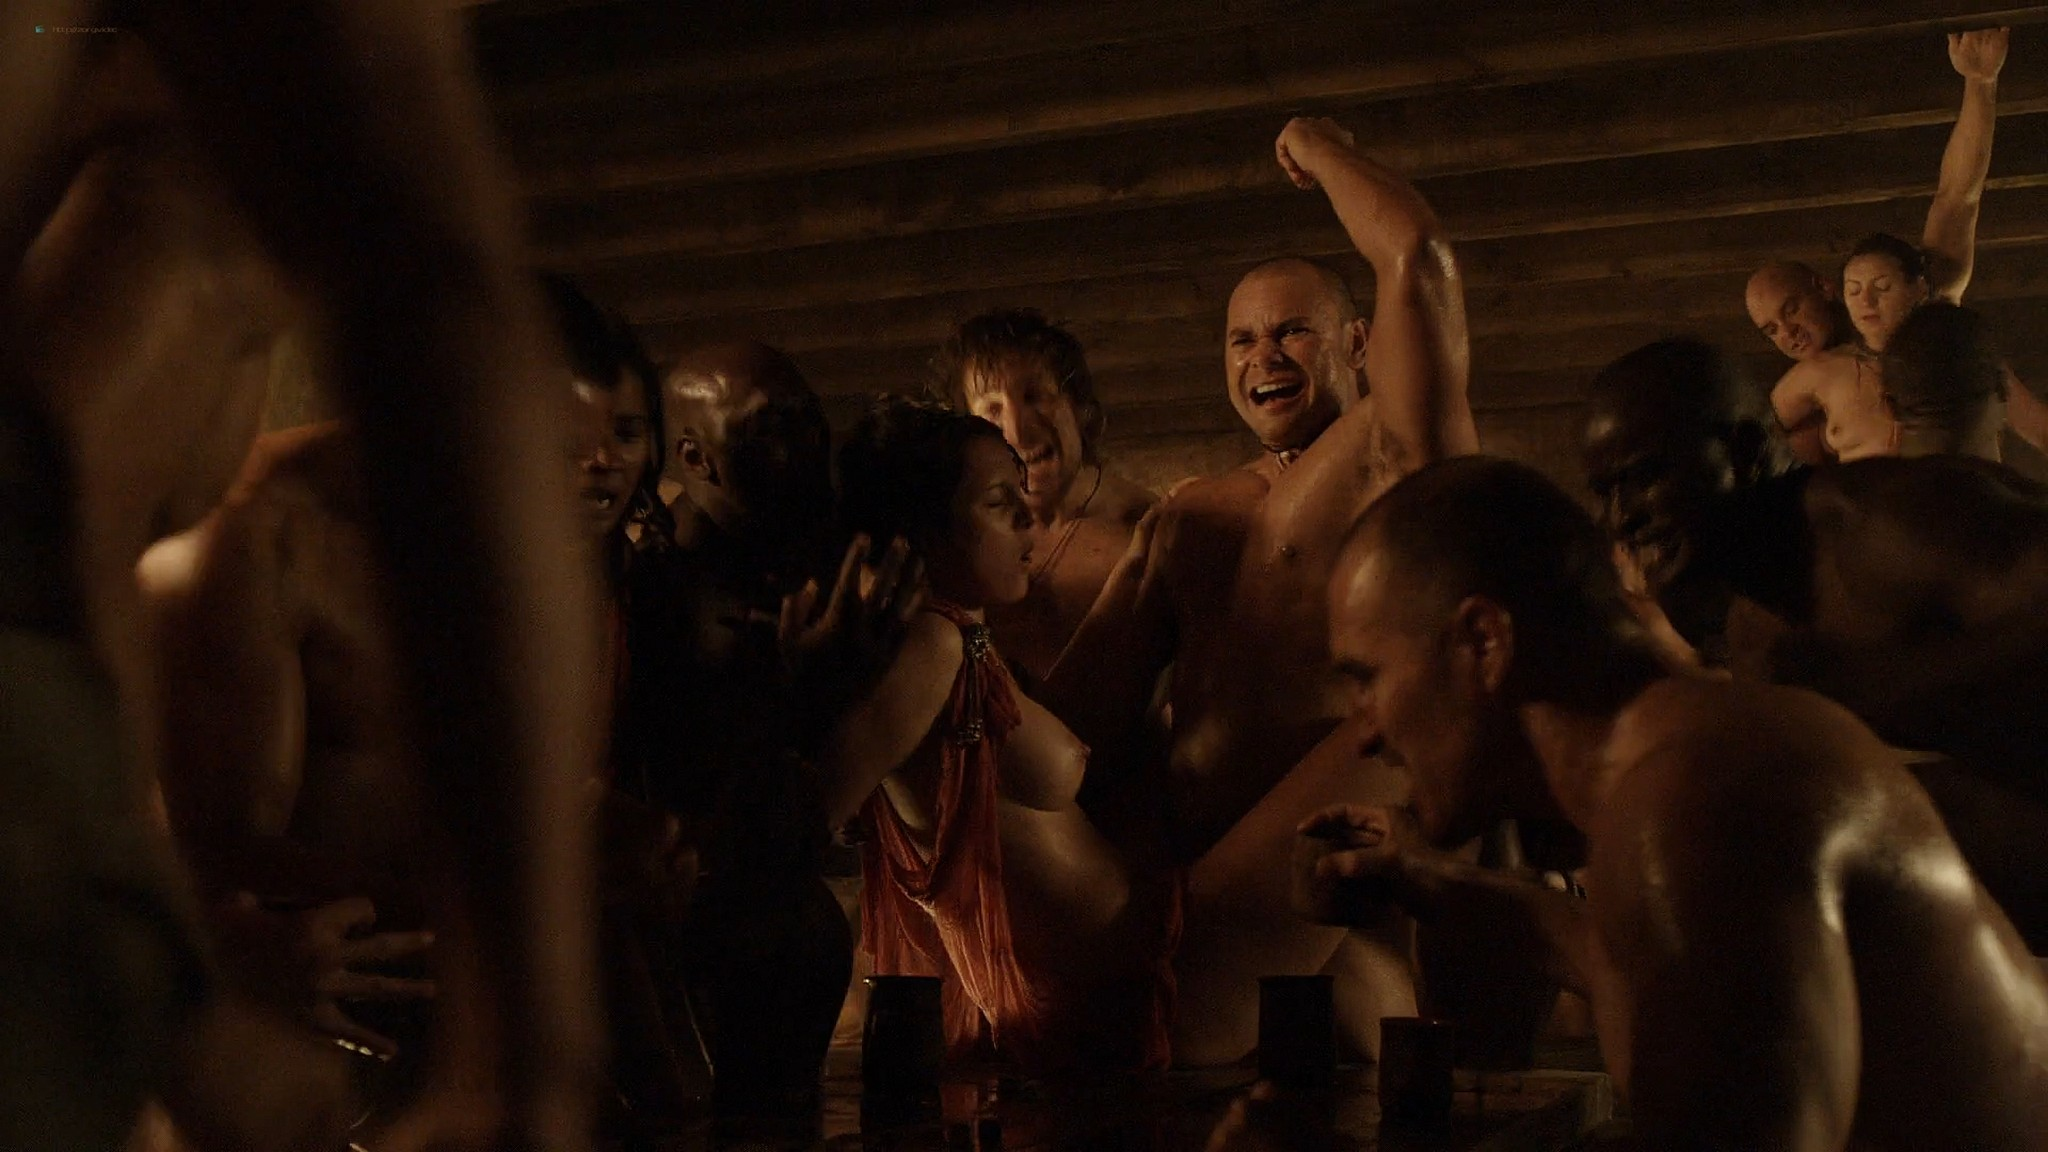 Lucy Lawless nude Lesley-Ann Brandt and other nude sex too - Spartacus (2010) Delicate Things s1e6 HD 1080p BluRay (4)